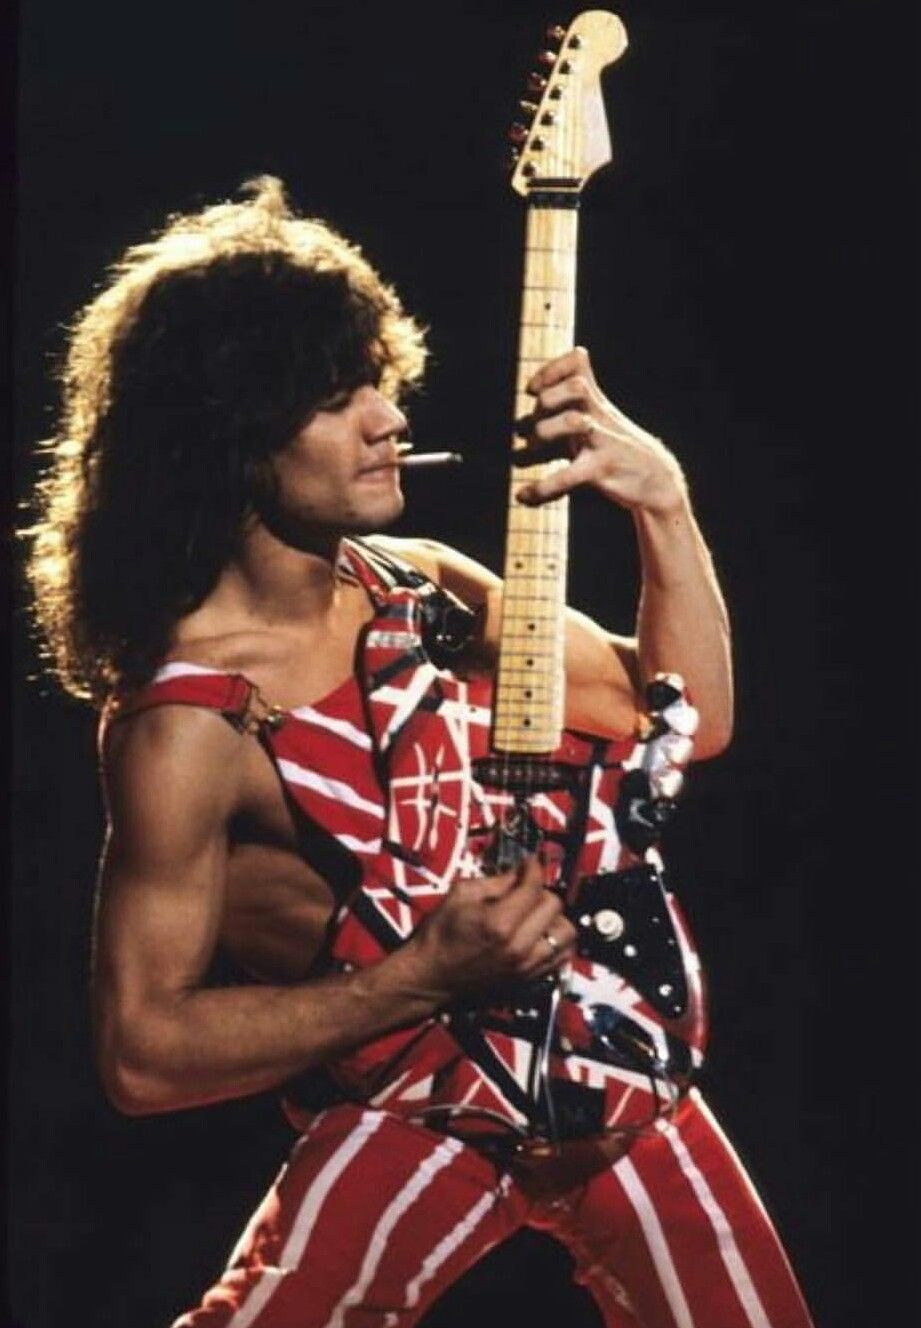 Pin By Alan Braswell On Music Van Halen Eddie Van Halen Rock Music